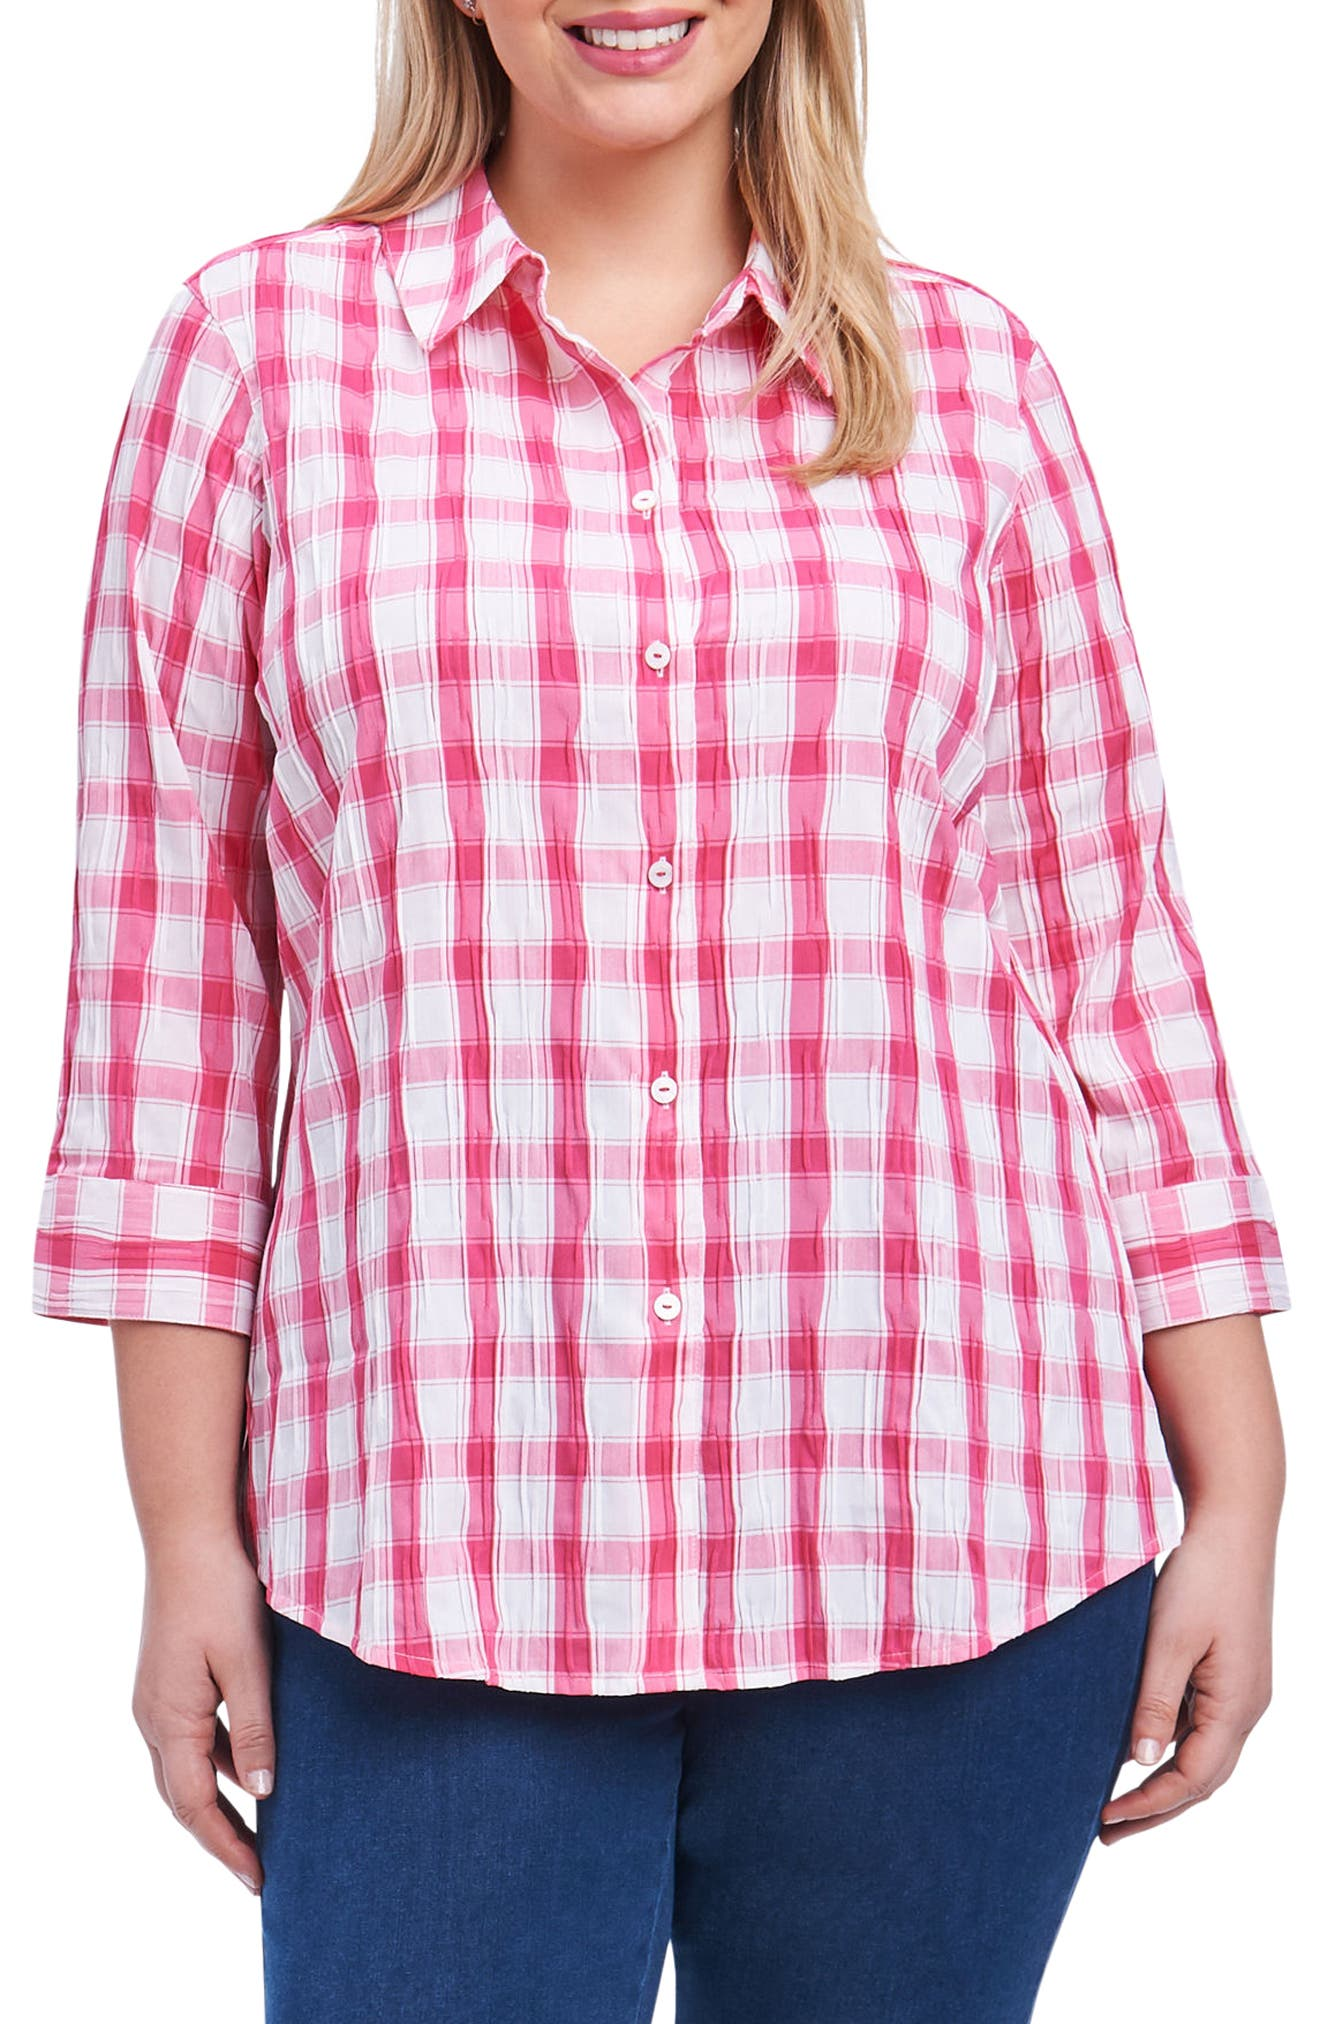 Sue Shaped Fit Crinkle Plaid Shirt,                         Main,                         color, Hot Pink